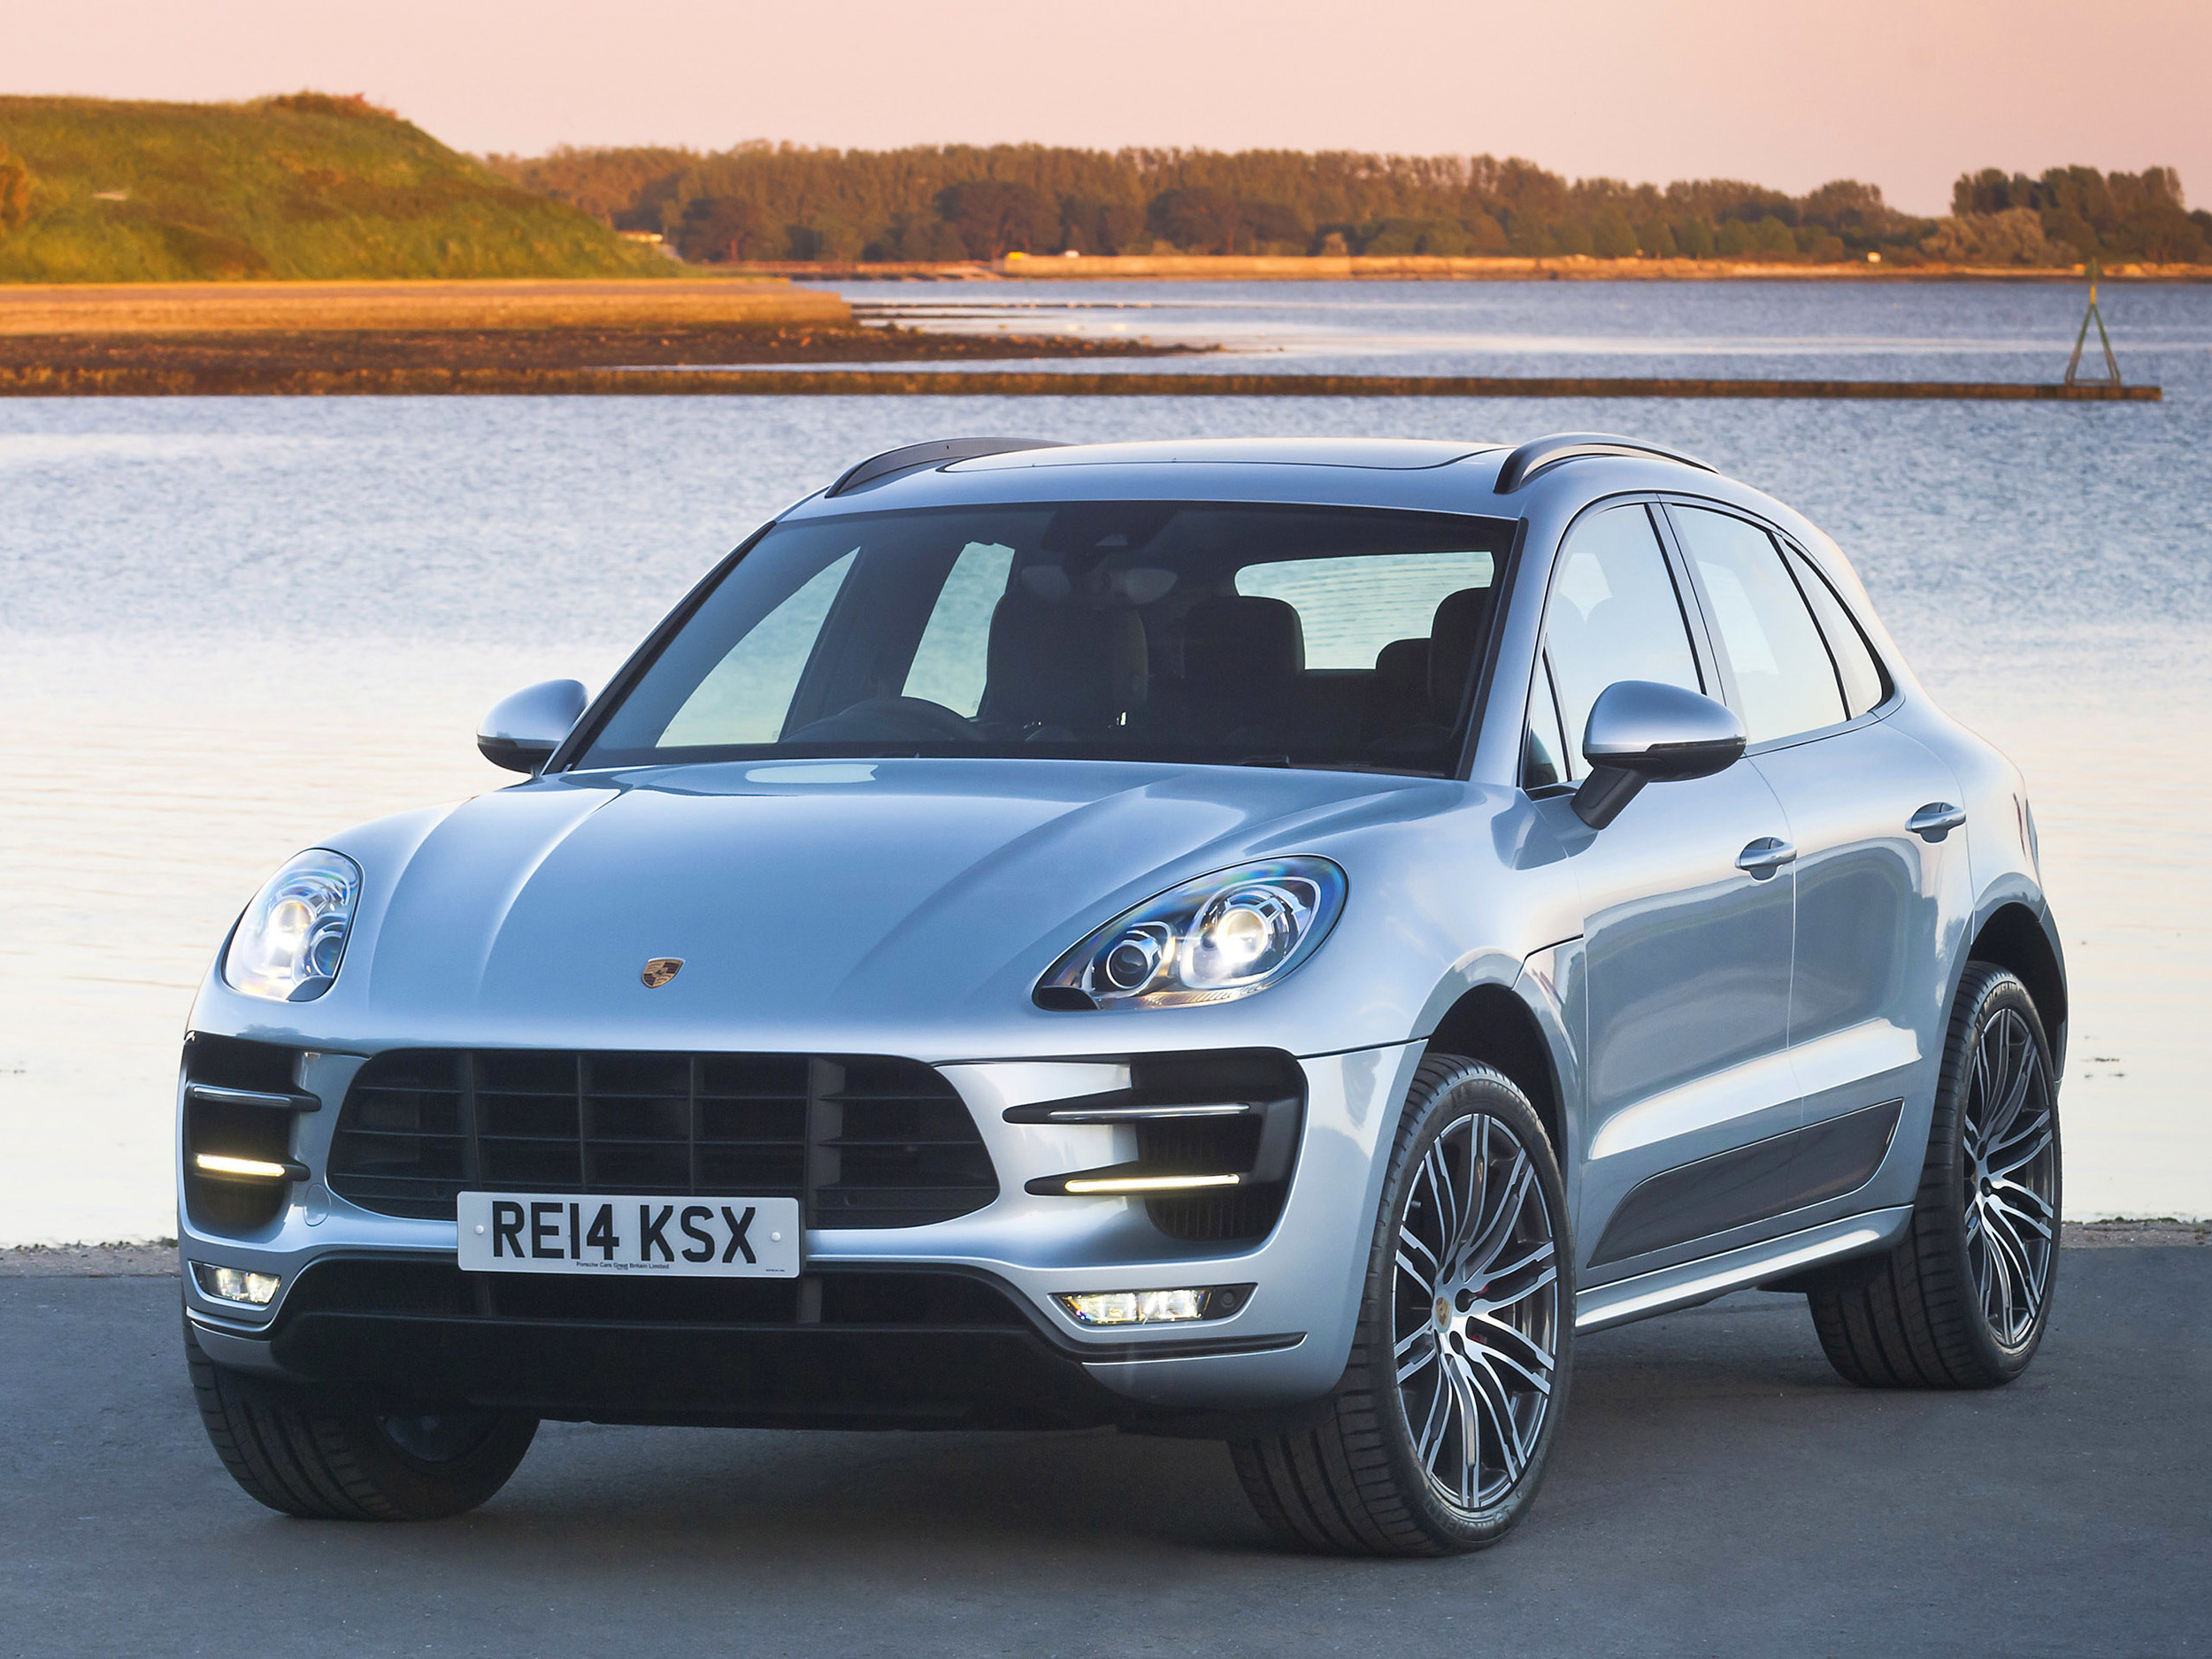 Precautionary recall for Porsche Macan S and Turbo